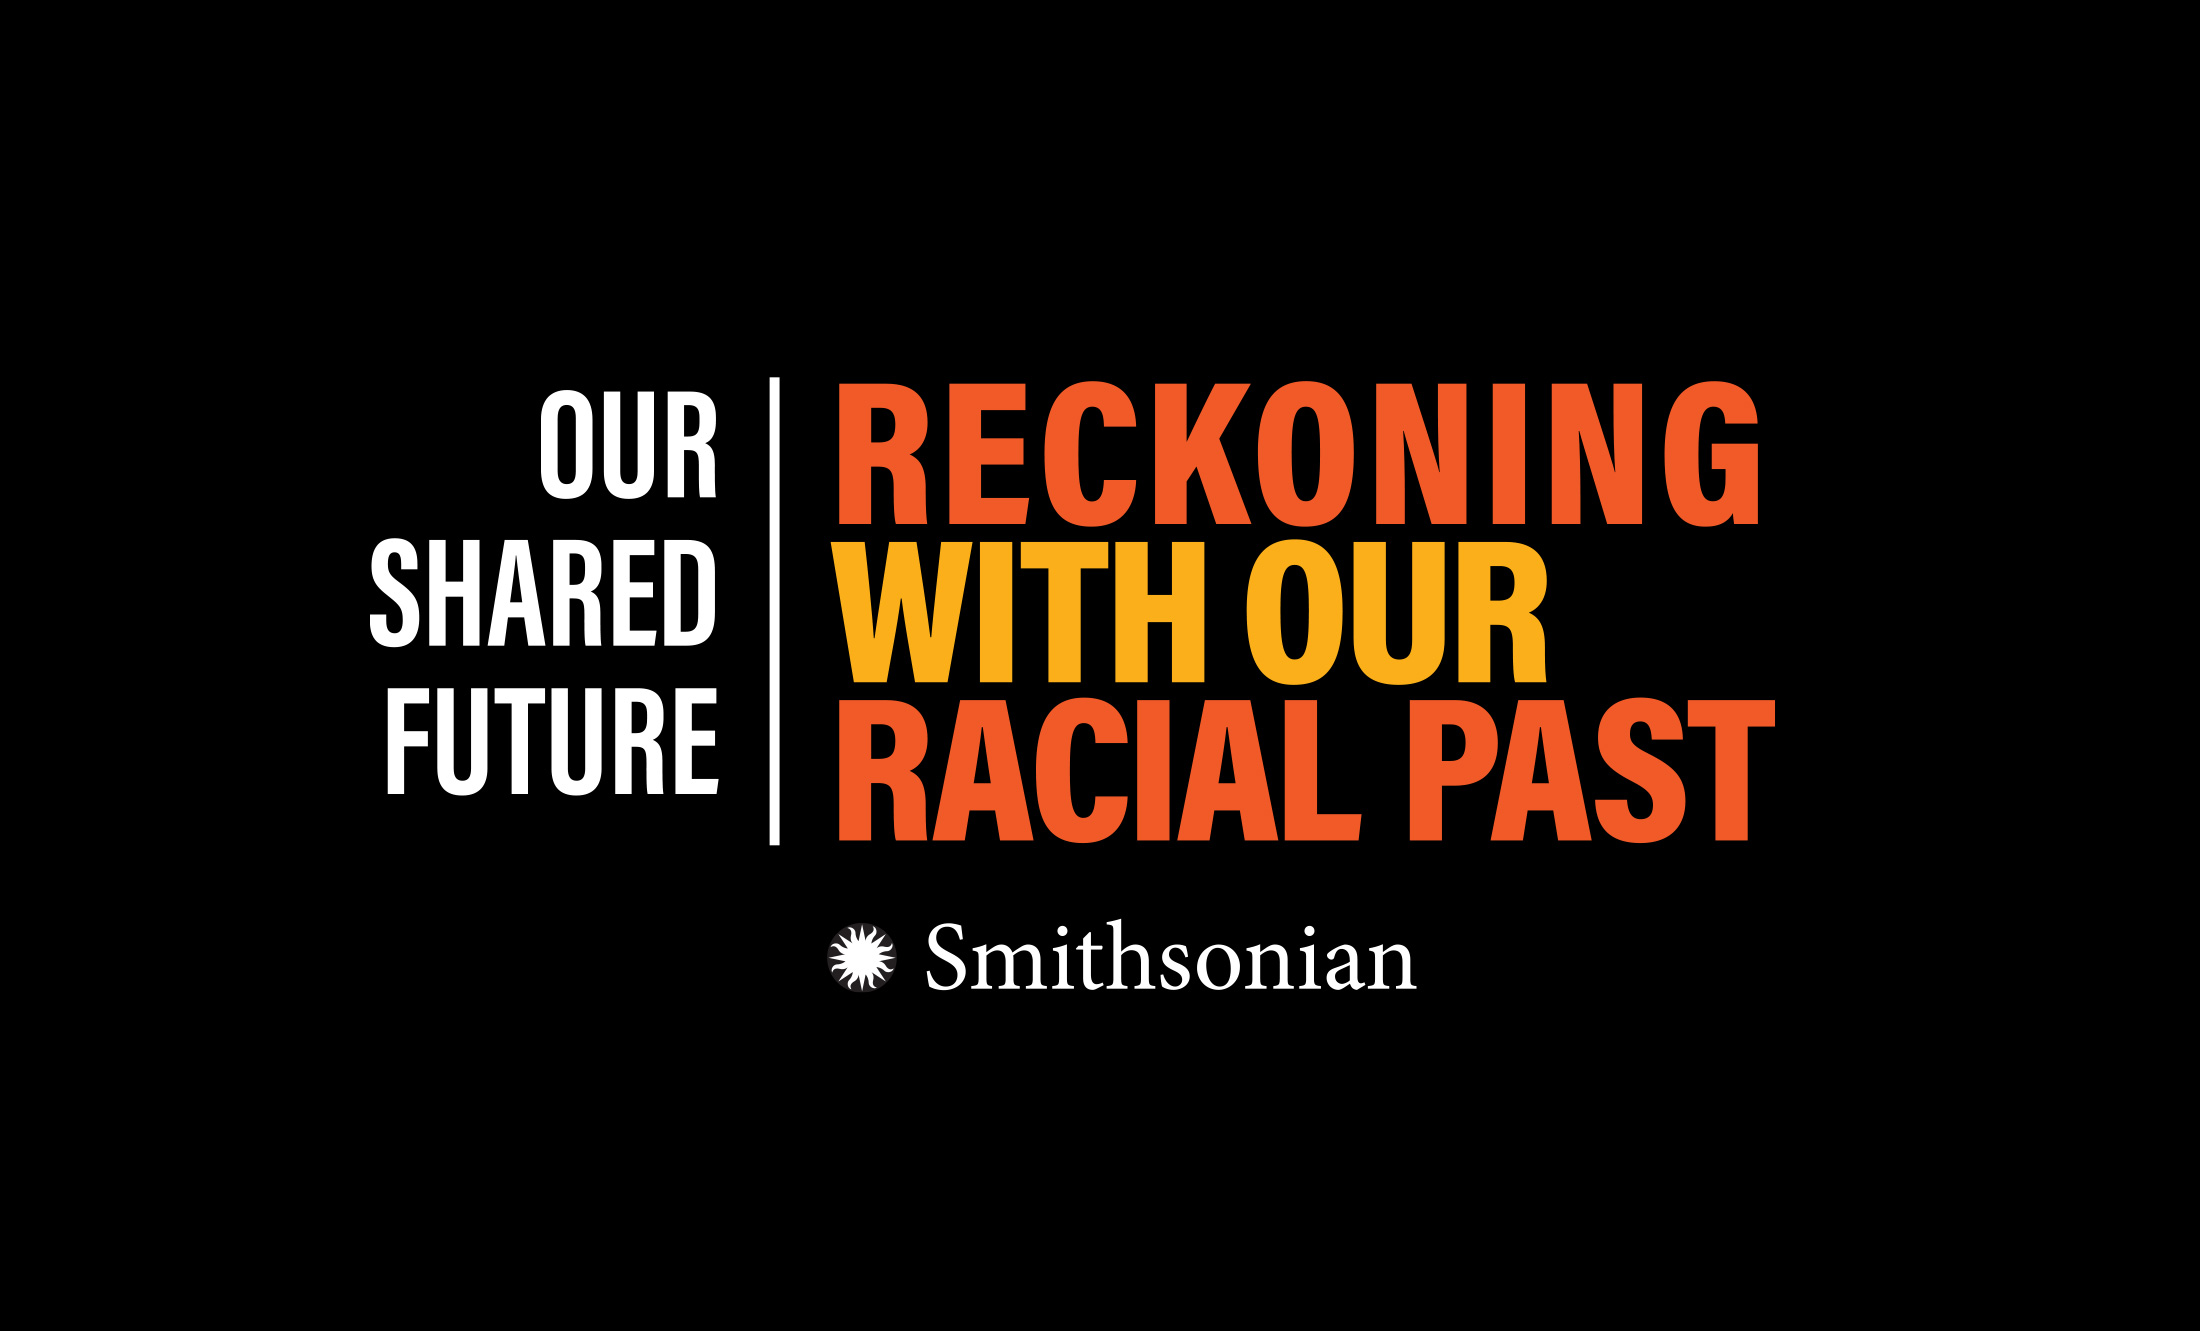 Smithsonian's initiative Our Shared Future: Reckoning With Our Racial Past